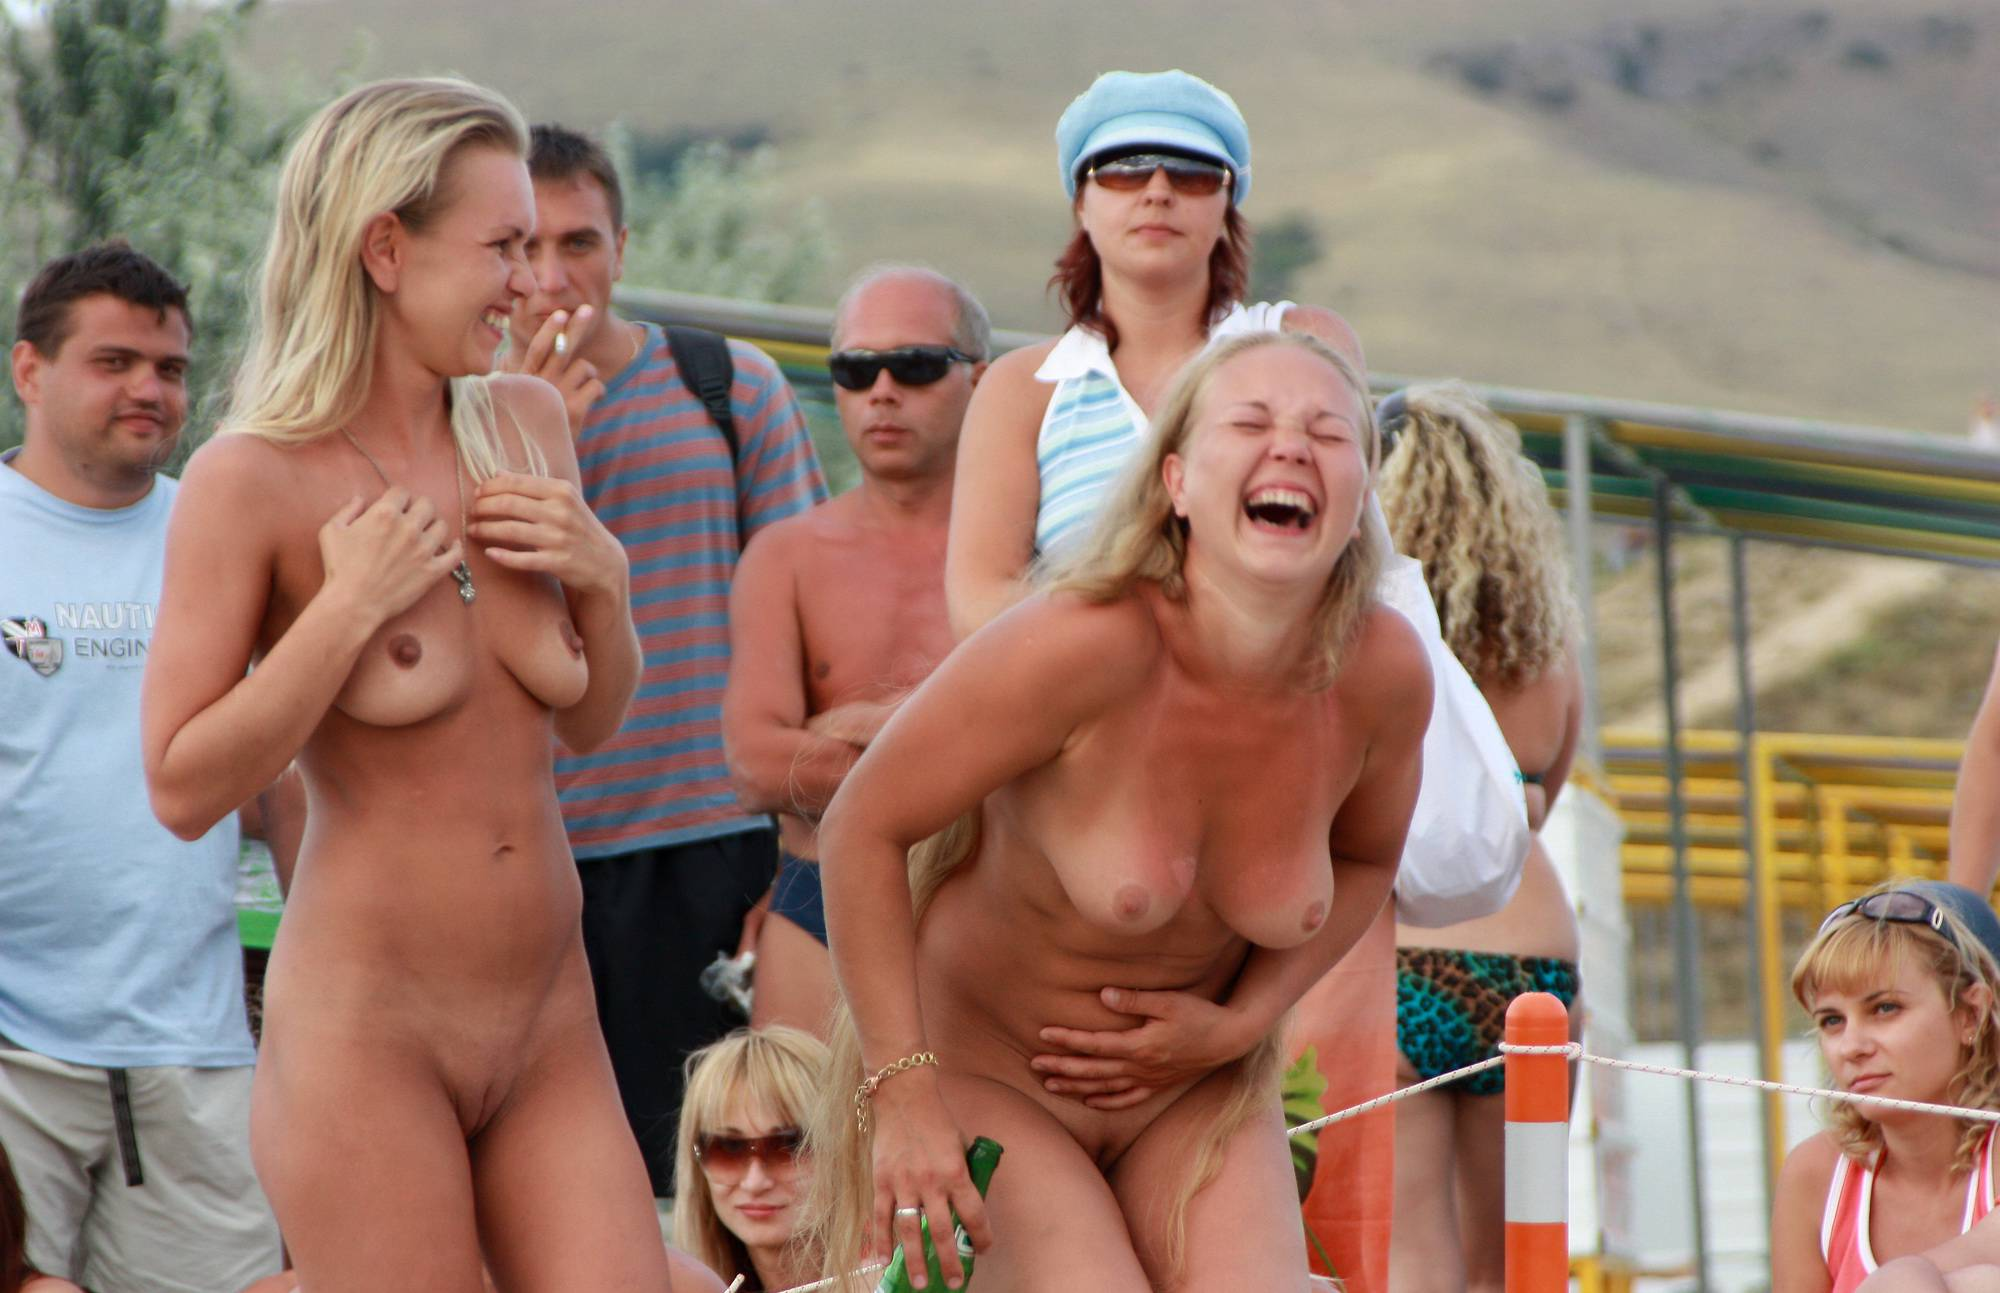 Nudist Pictures Neptune Race Preperation - 1